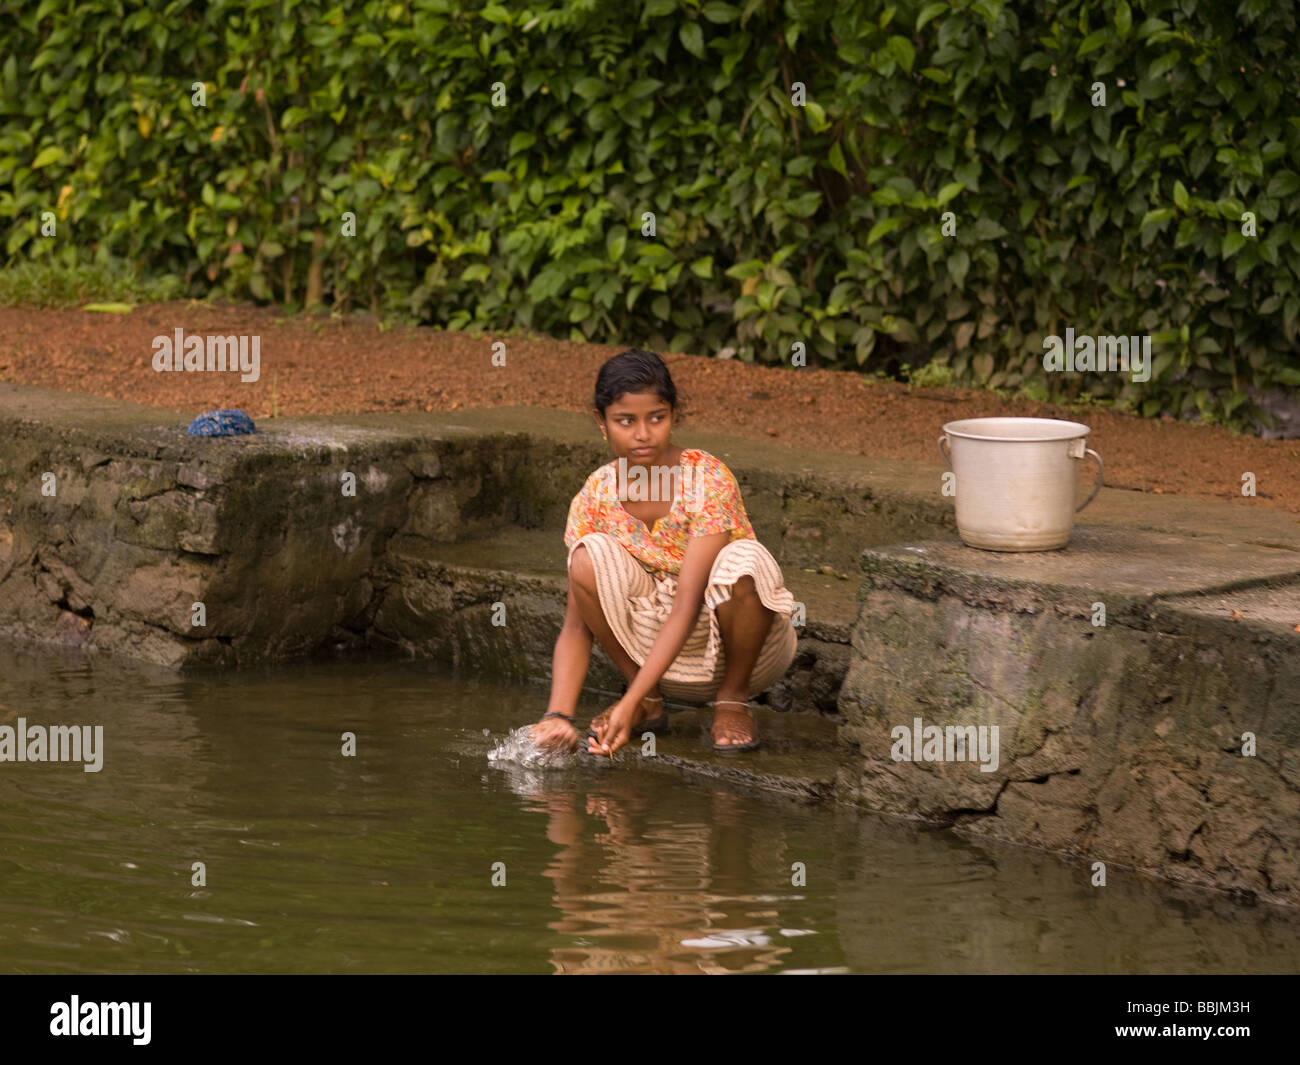 girl in india washing clothes in river water stock photo